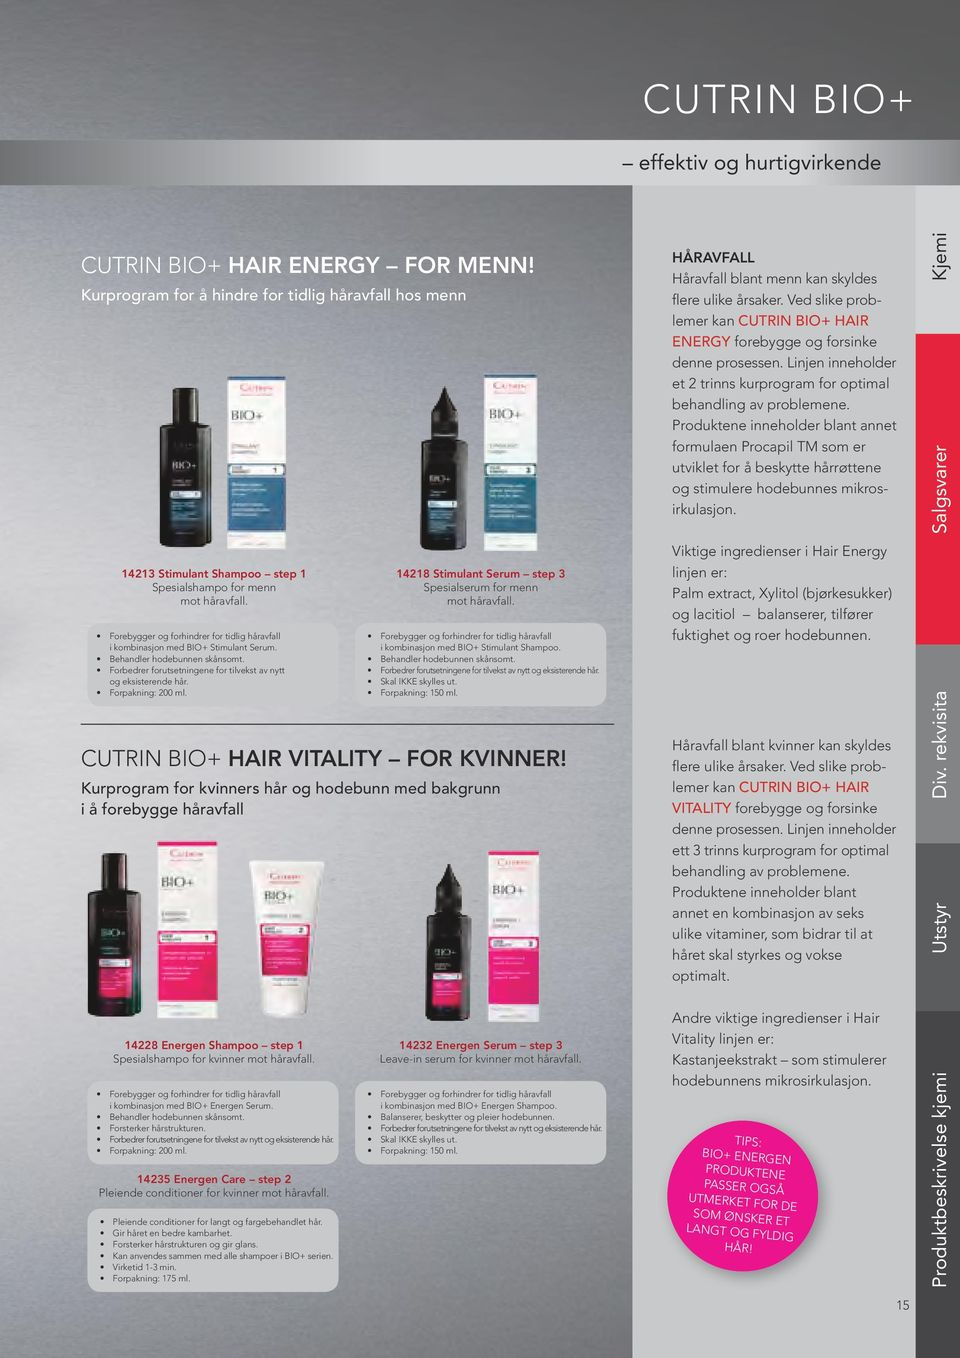 Forpakning: 200 ml. Cutrin Bio+ HAIR VITALITY FOR KVINNER!